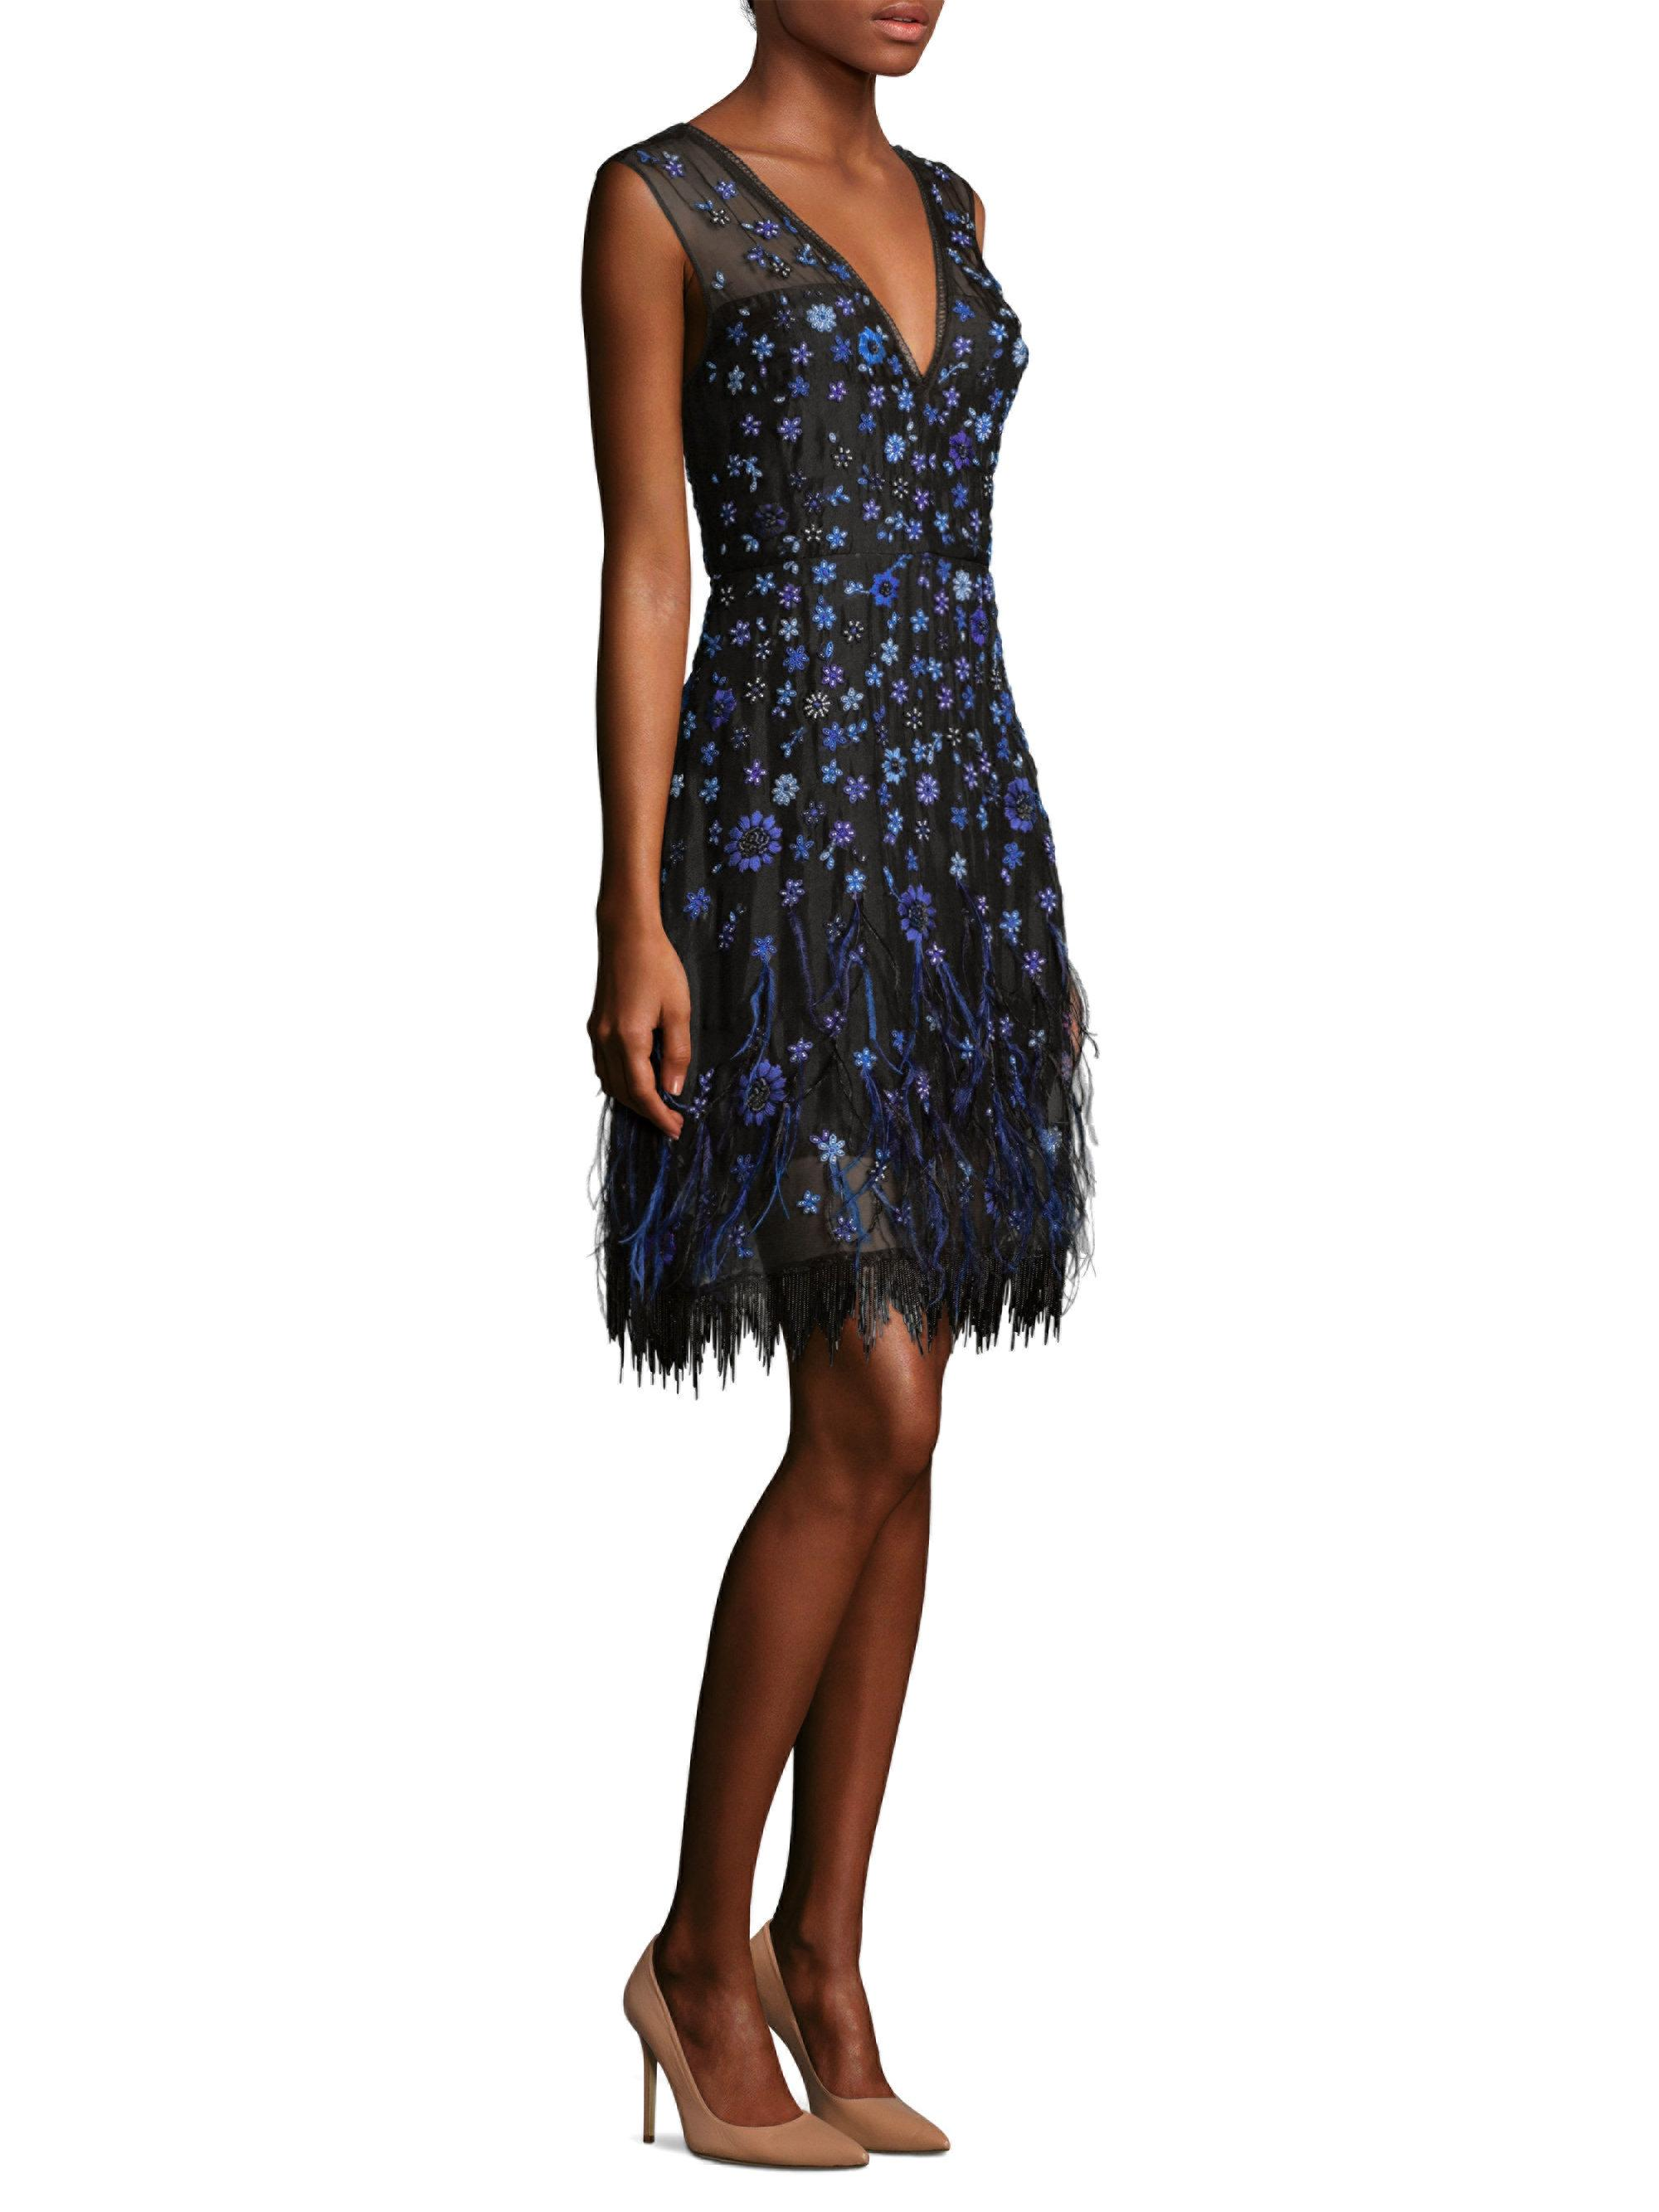 f92bce51fb169 Elie Tahari Jayla Feathered Floral Dress in Black - Lyst